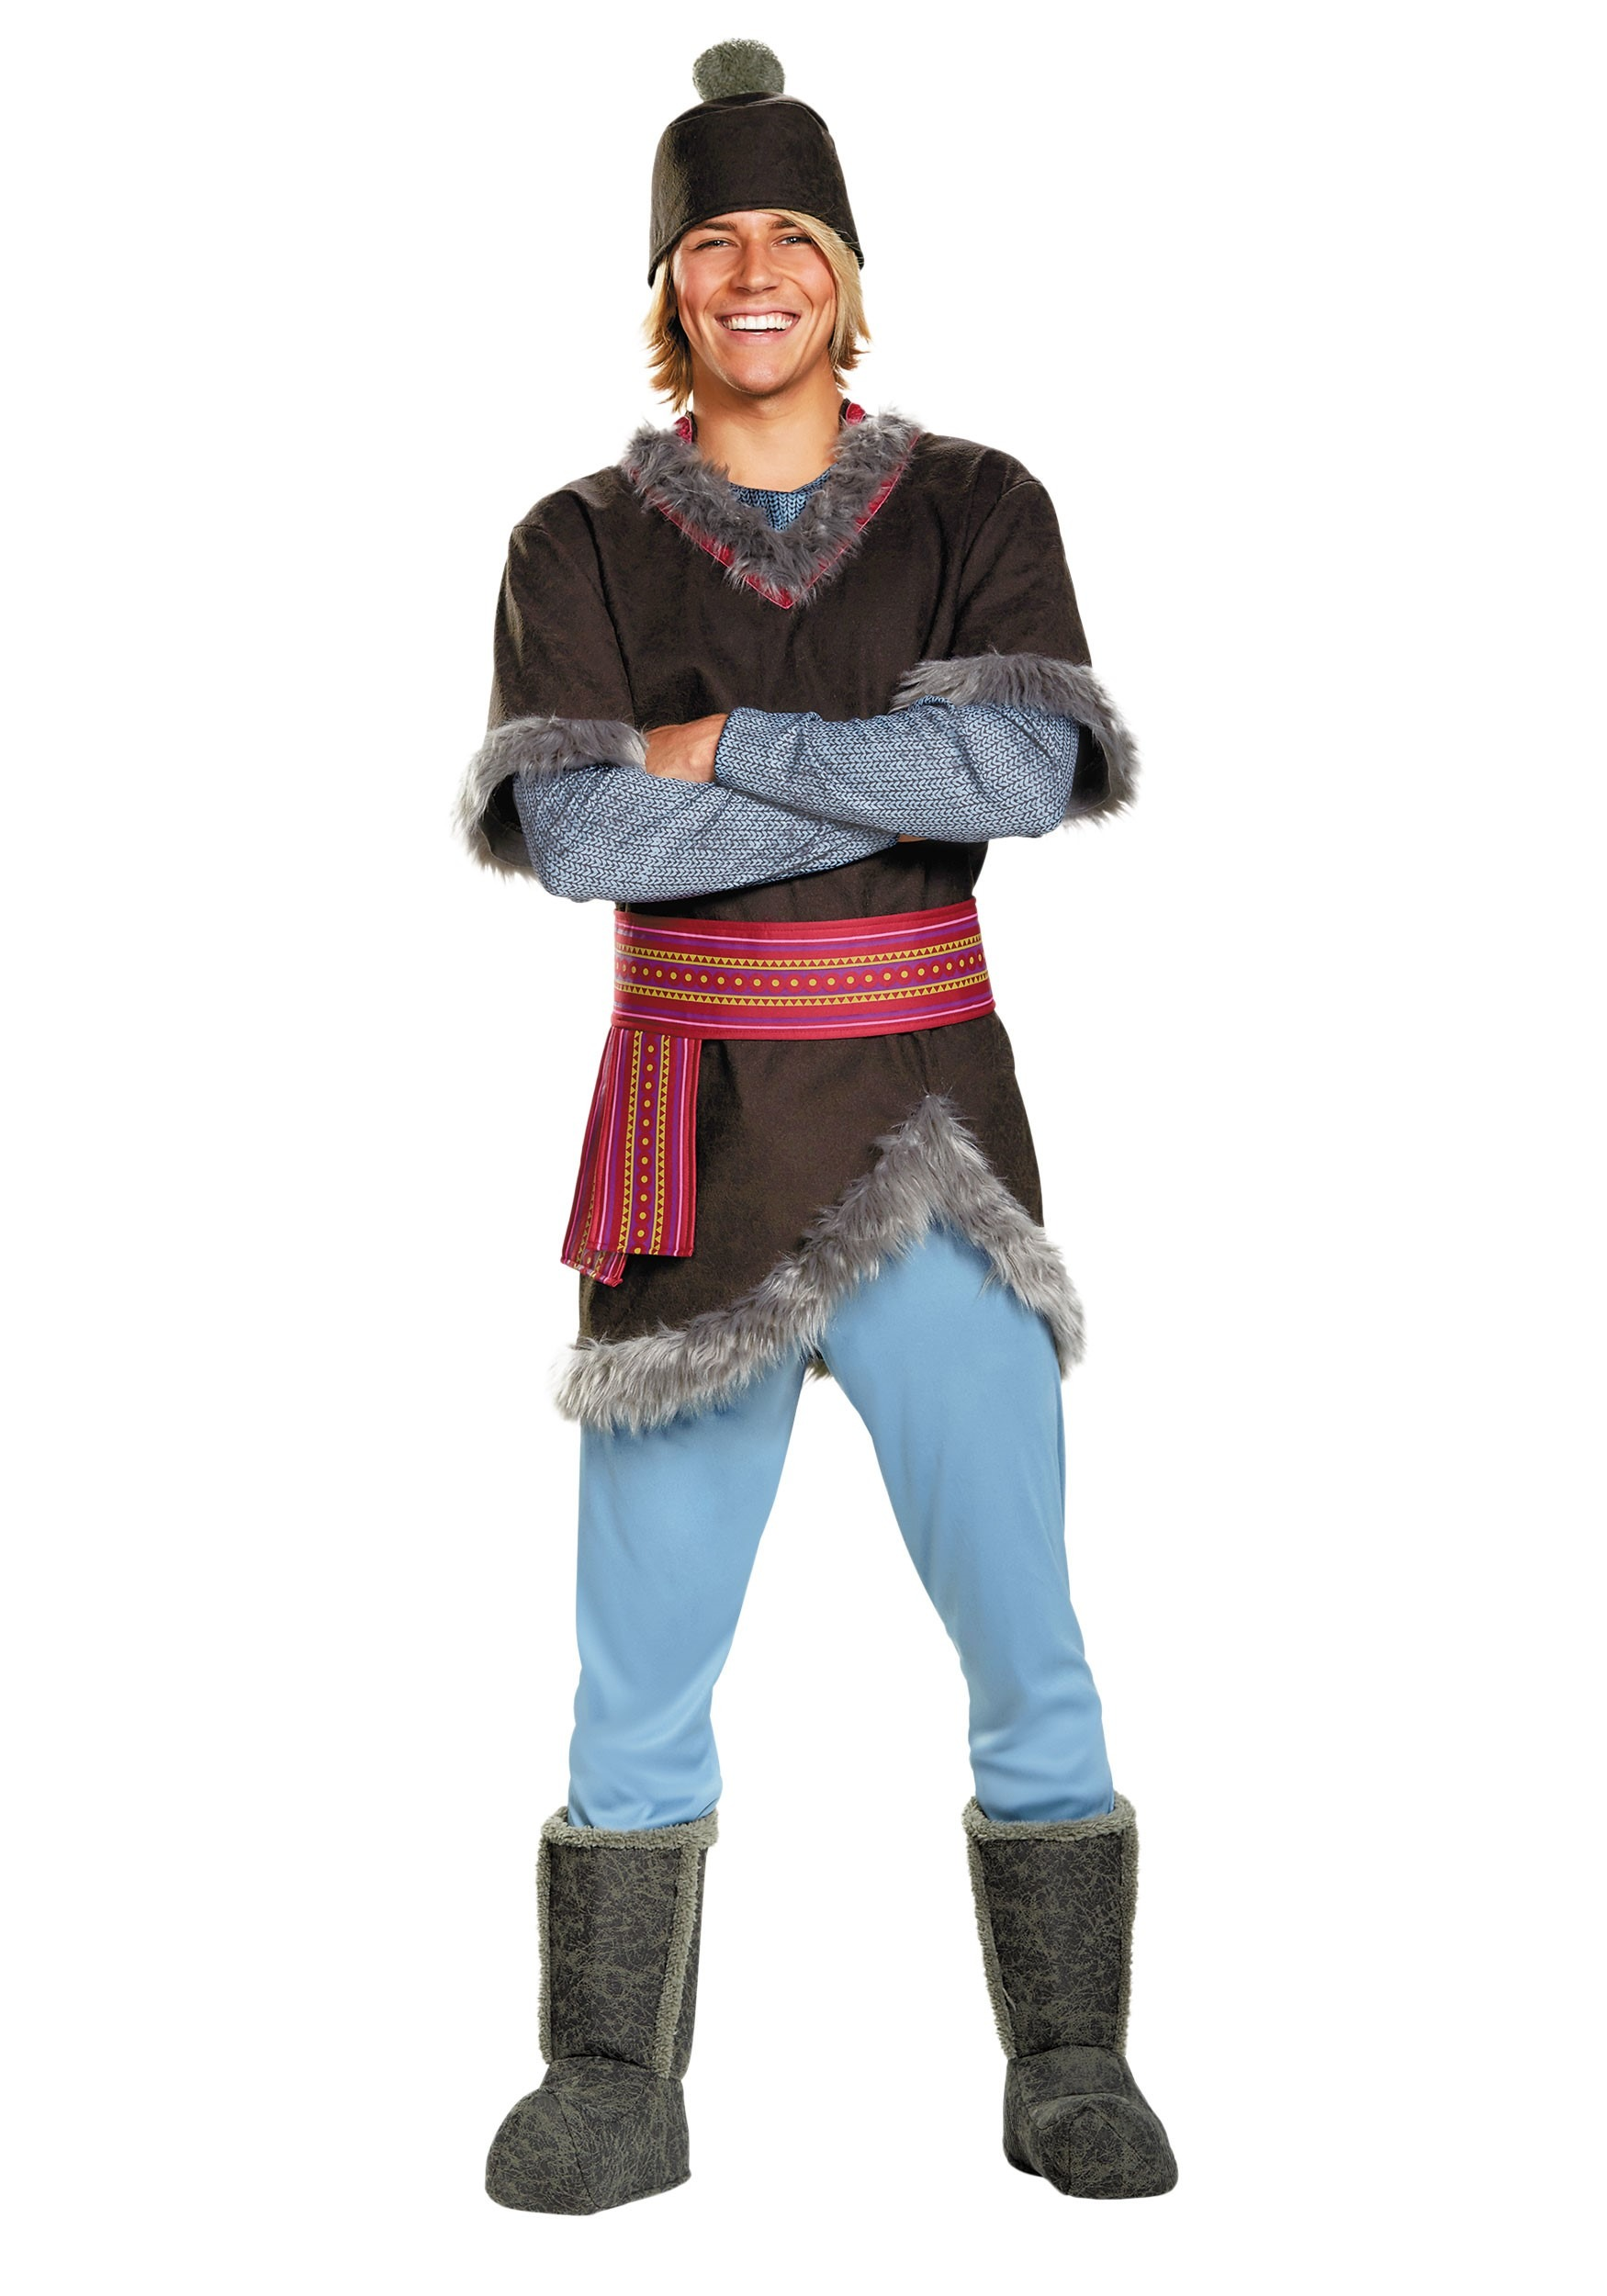 Outdoor Party Lighting picture on frozen kristoff deluxe adult costume with Outdoor Party Lighting, Outdoor Lighting ideas 624d41a9dca174f3b96b197de9f6a6fa